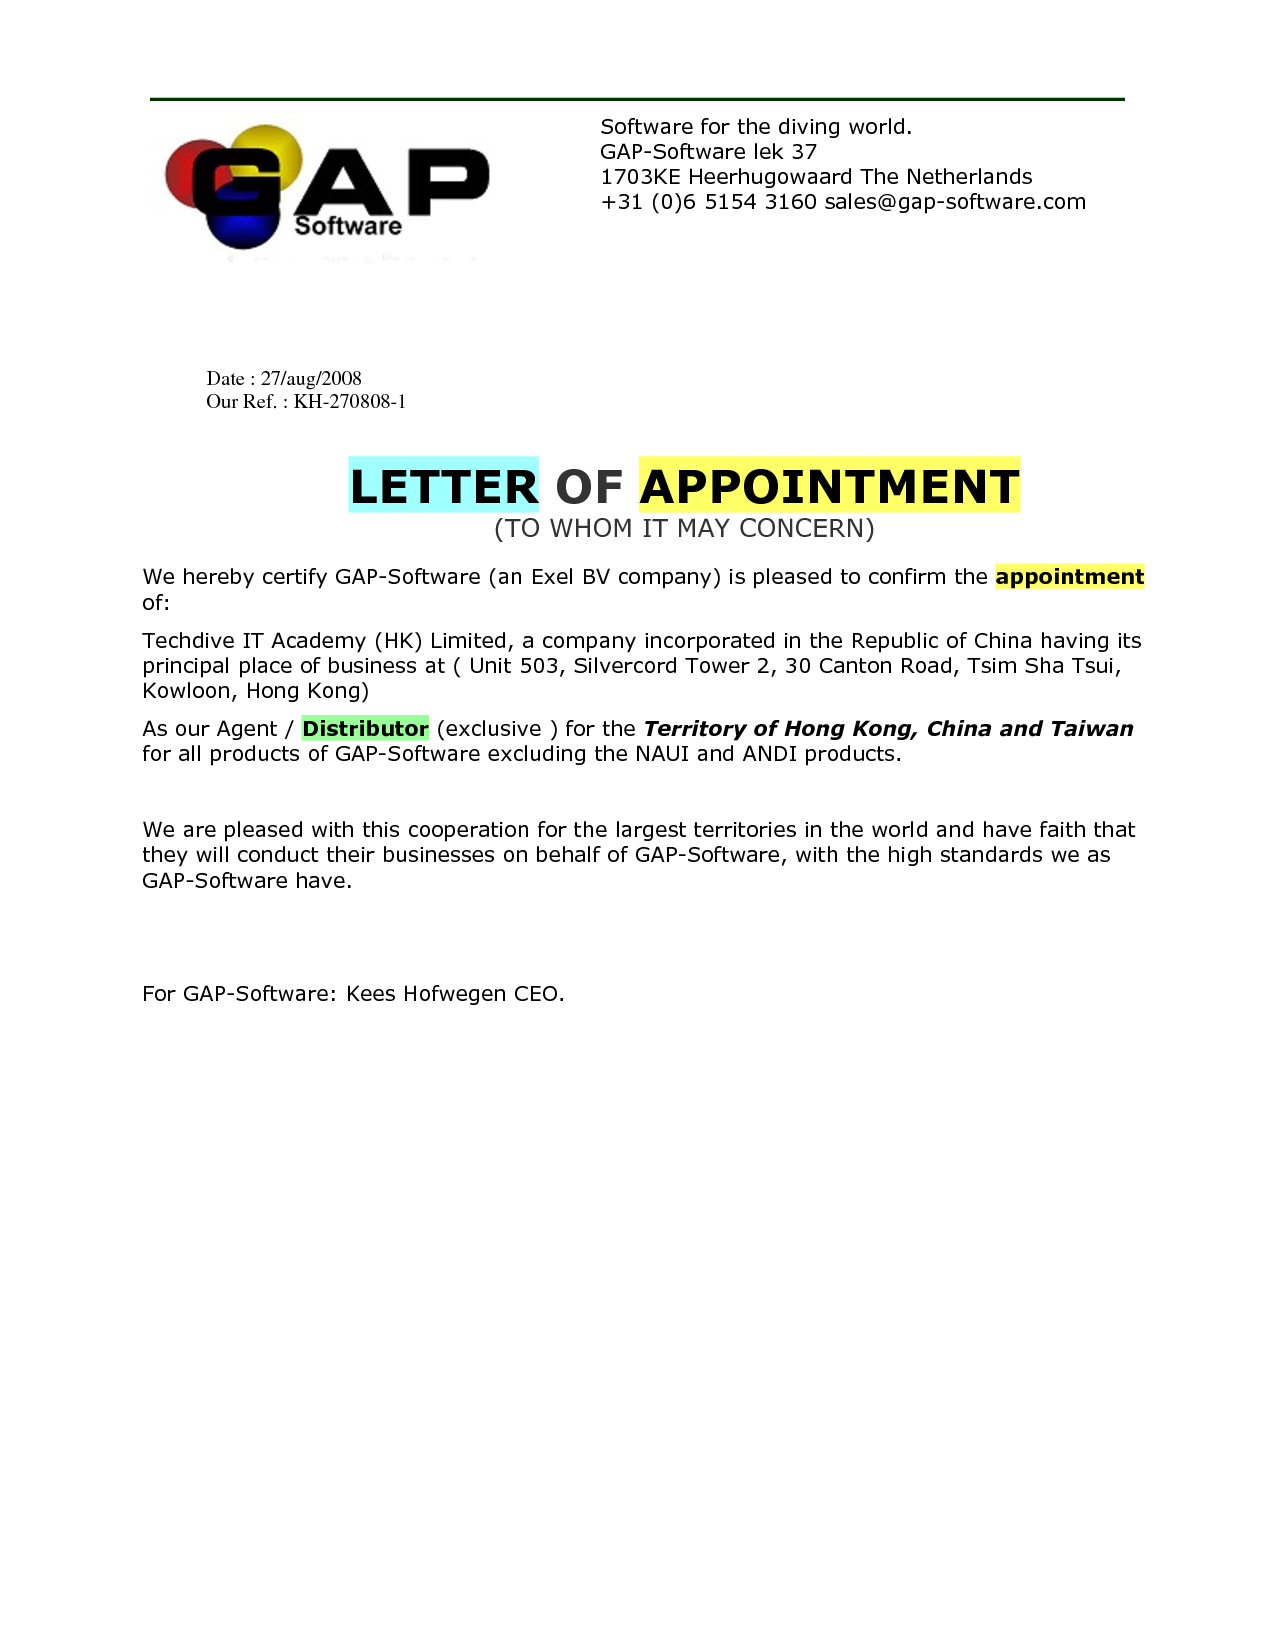 Appointment Letter For Interview Job Drug Prevention And Education